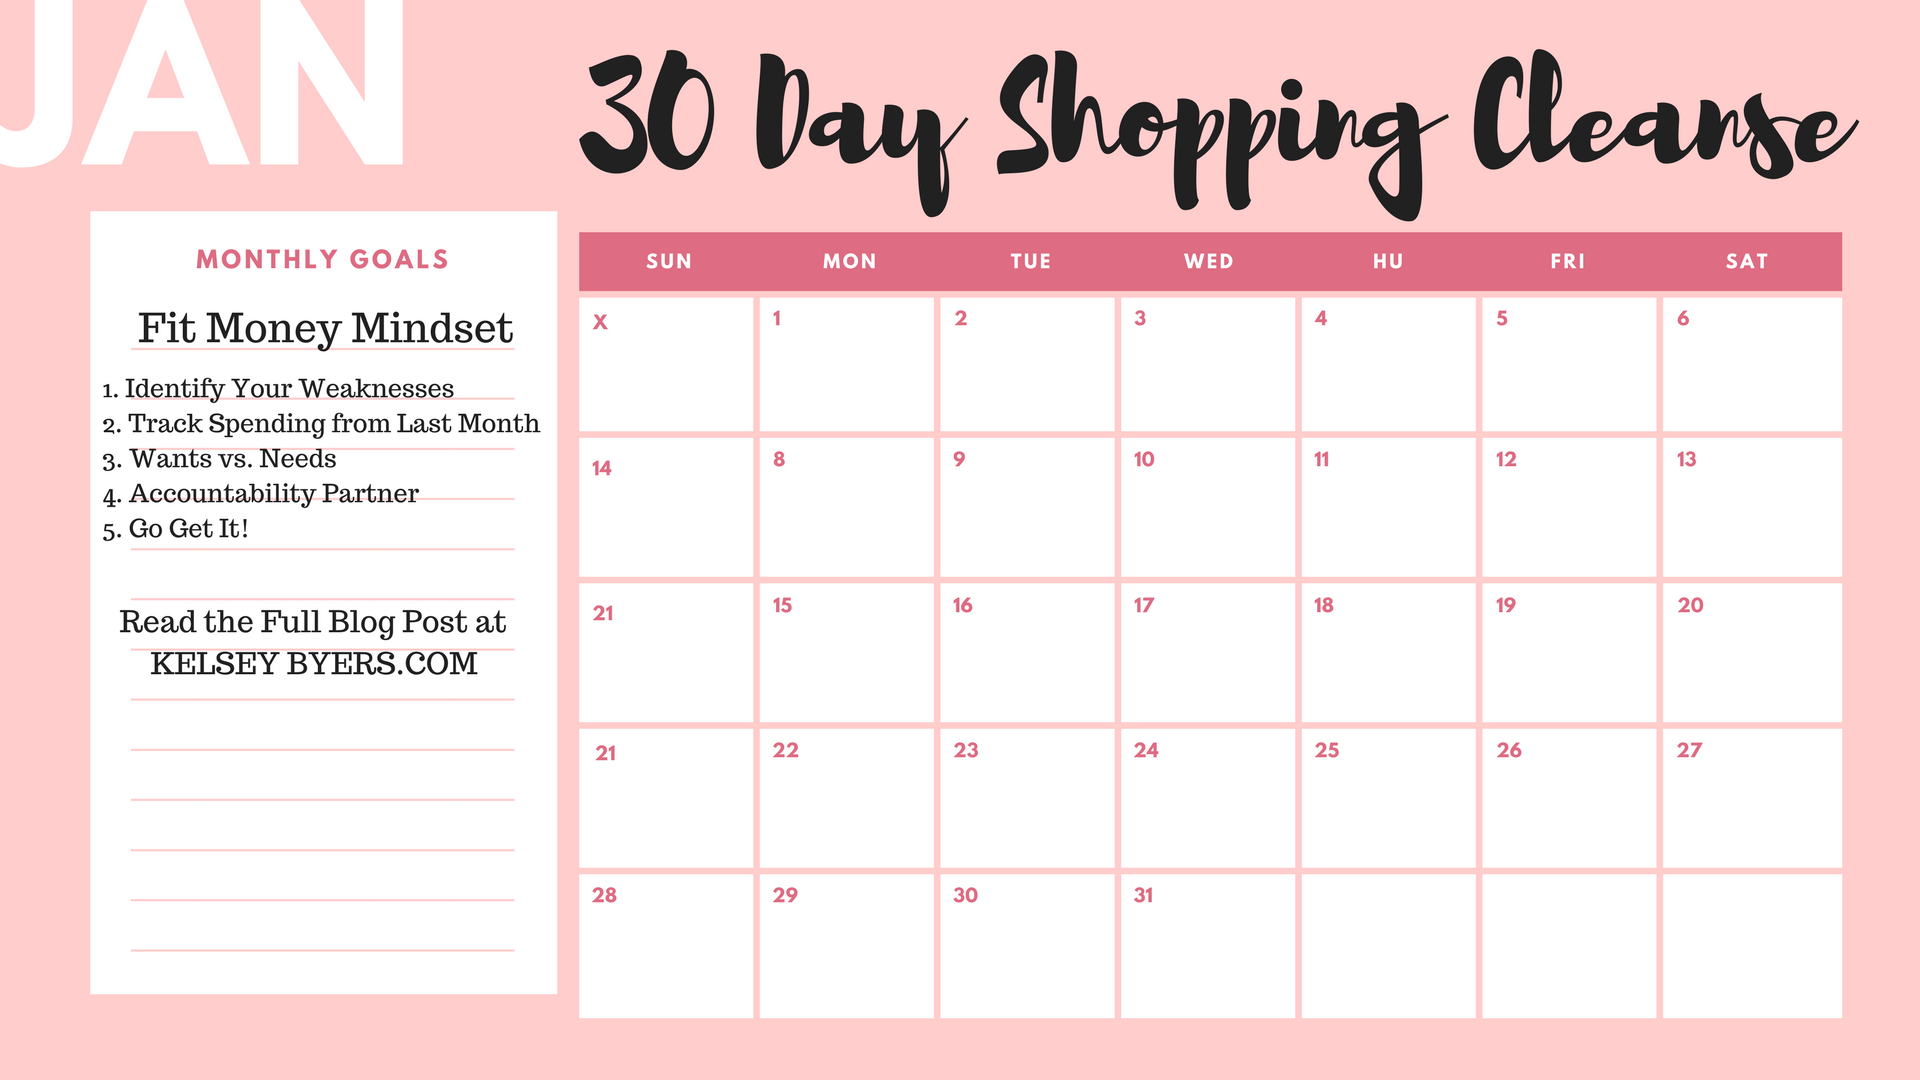 Calendar Girl May Free Read : One month shopping cleanse kelsey byers